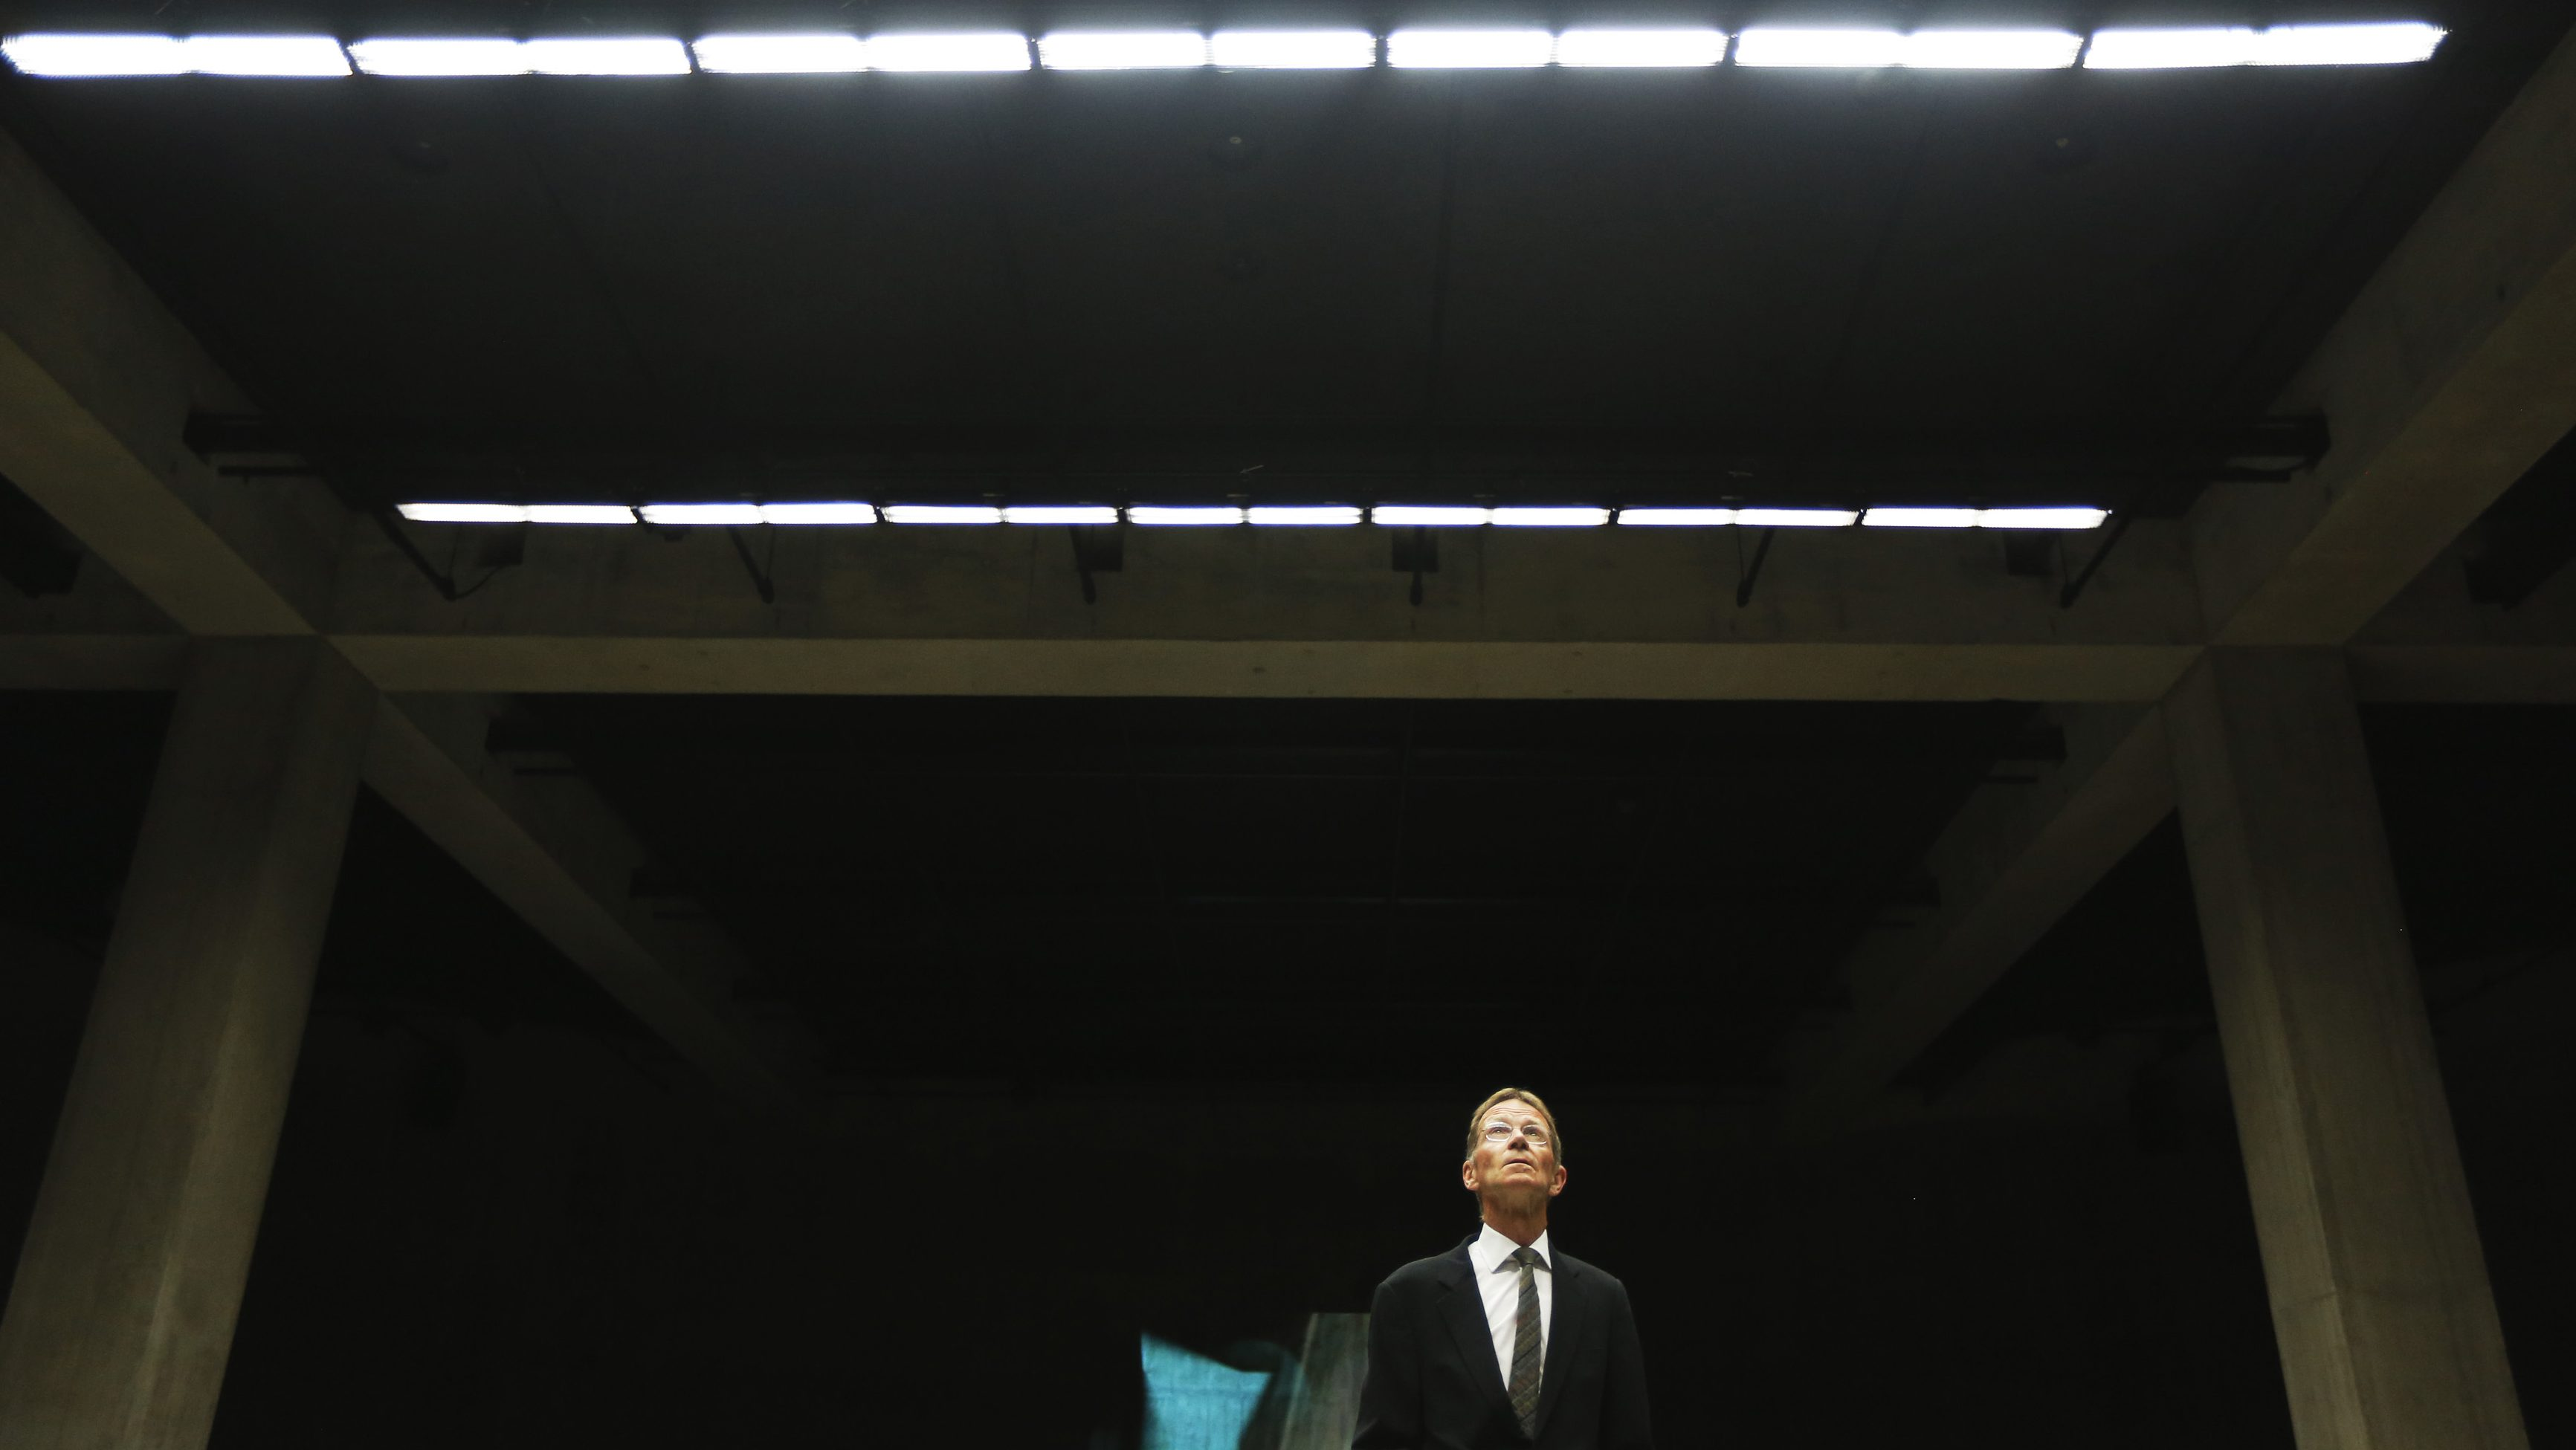 Director Nicholas Serota poses at the official opening of The Tanks, new galleries within the Tate Modern art gallery in London July 16, 2012.